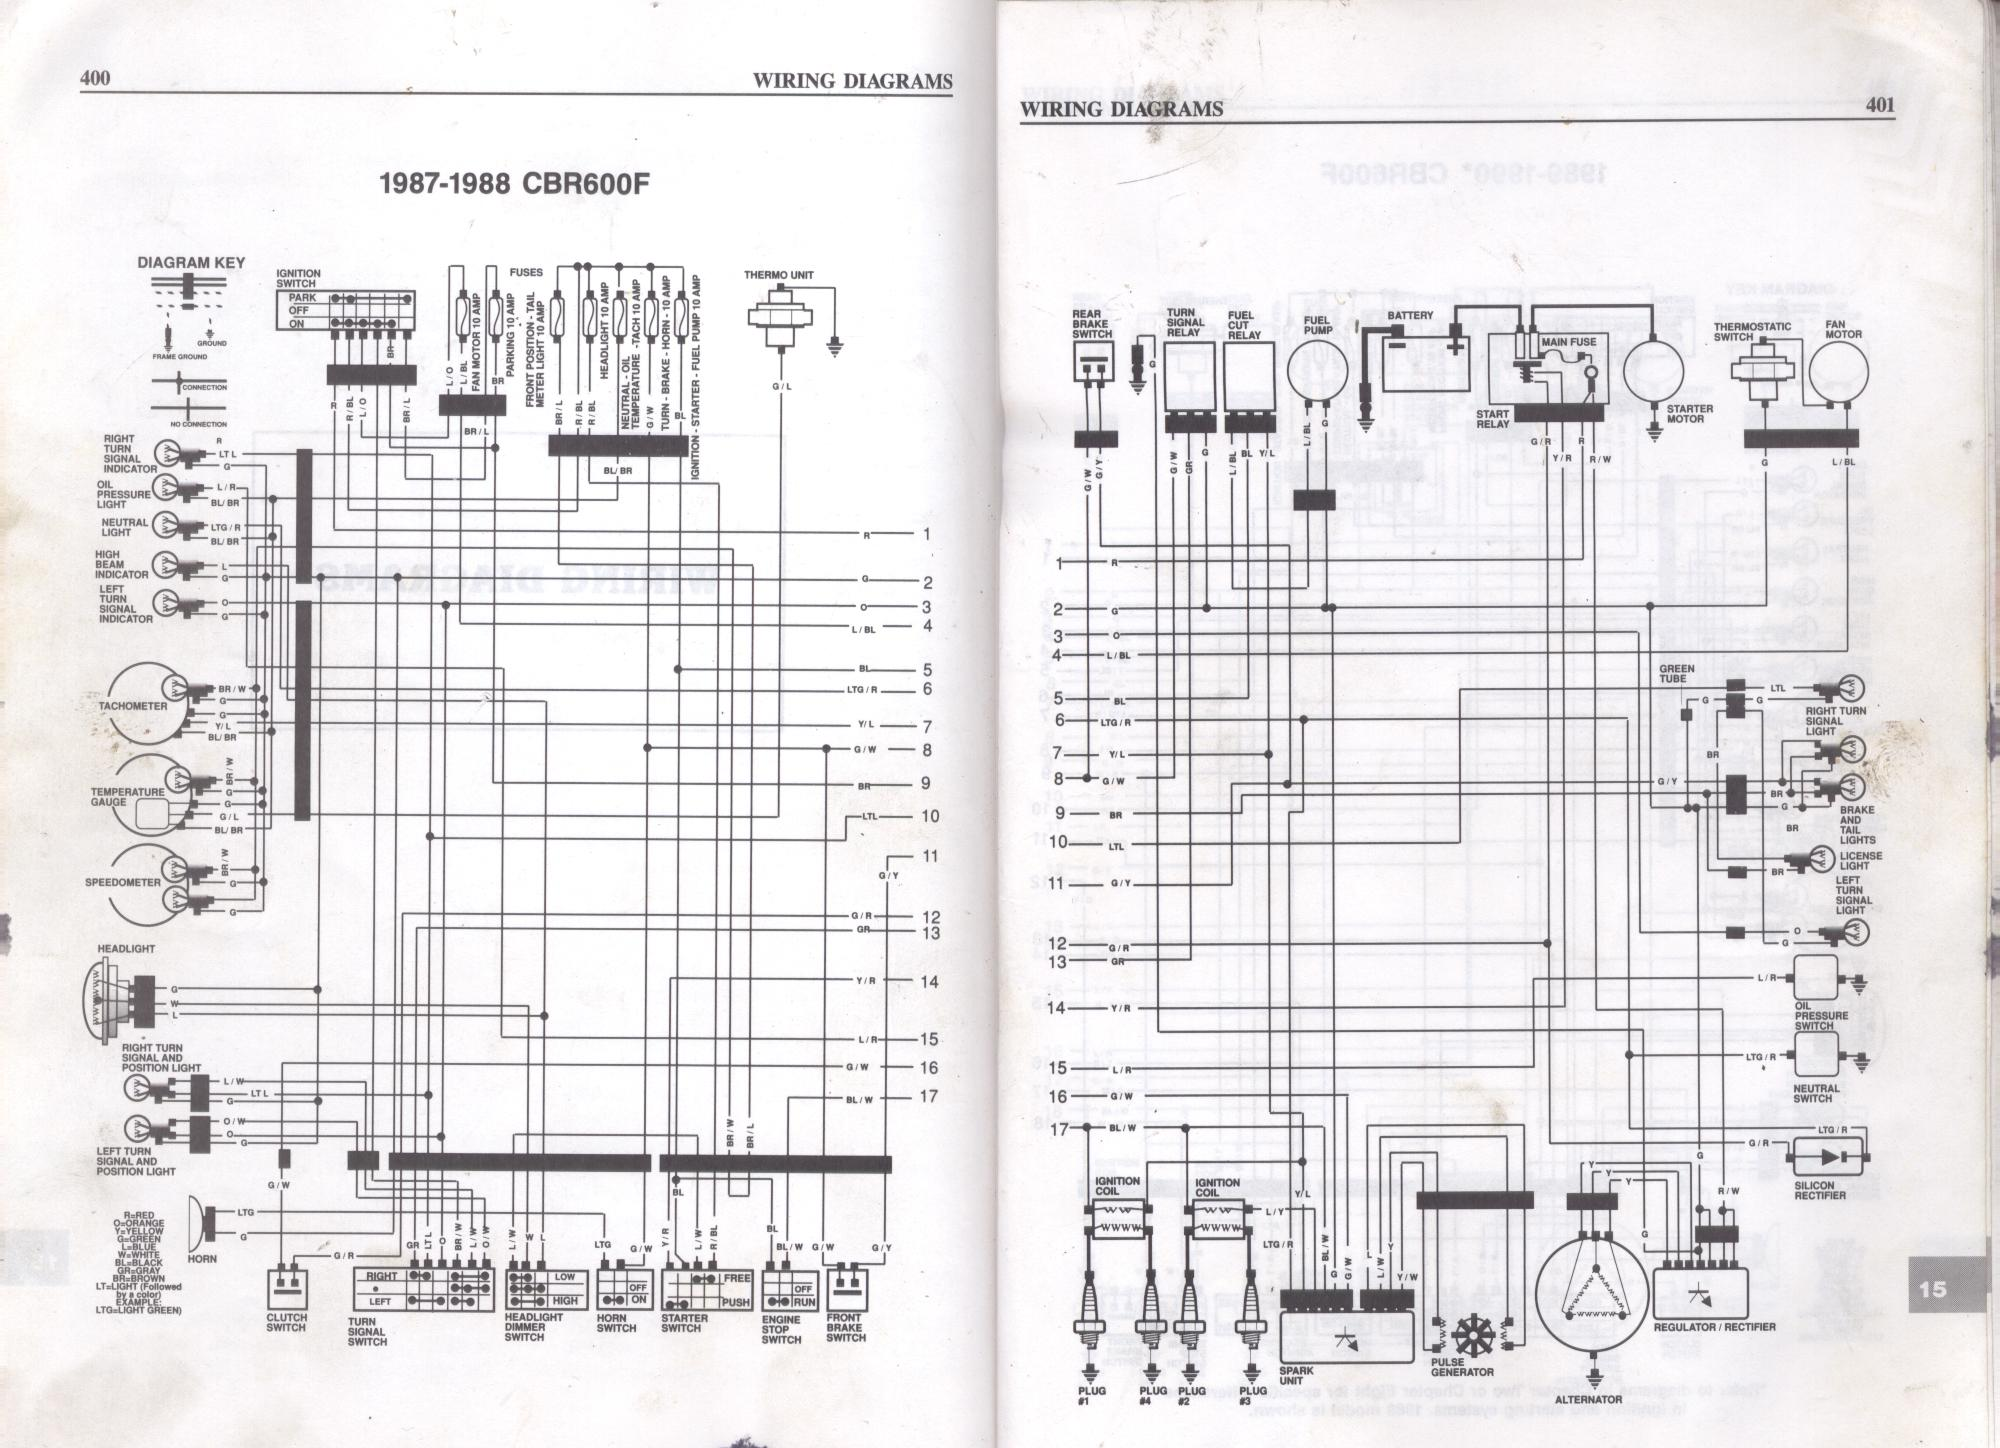 yamaha xt200 wiring diagram 0136 1984 yamaha virago 1000 wiring diagram wiring resources  1984 yamaha virago 1000 wiring diagram